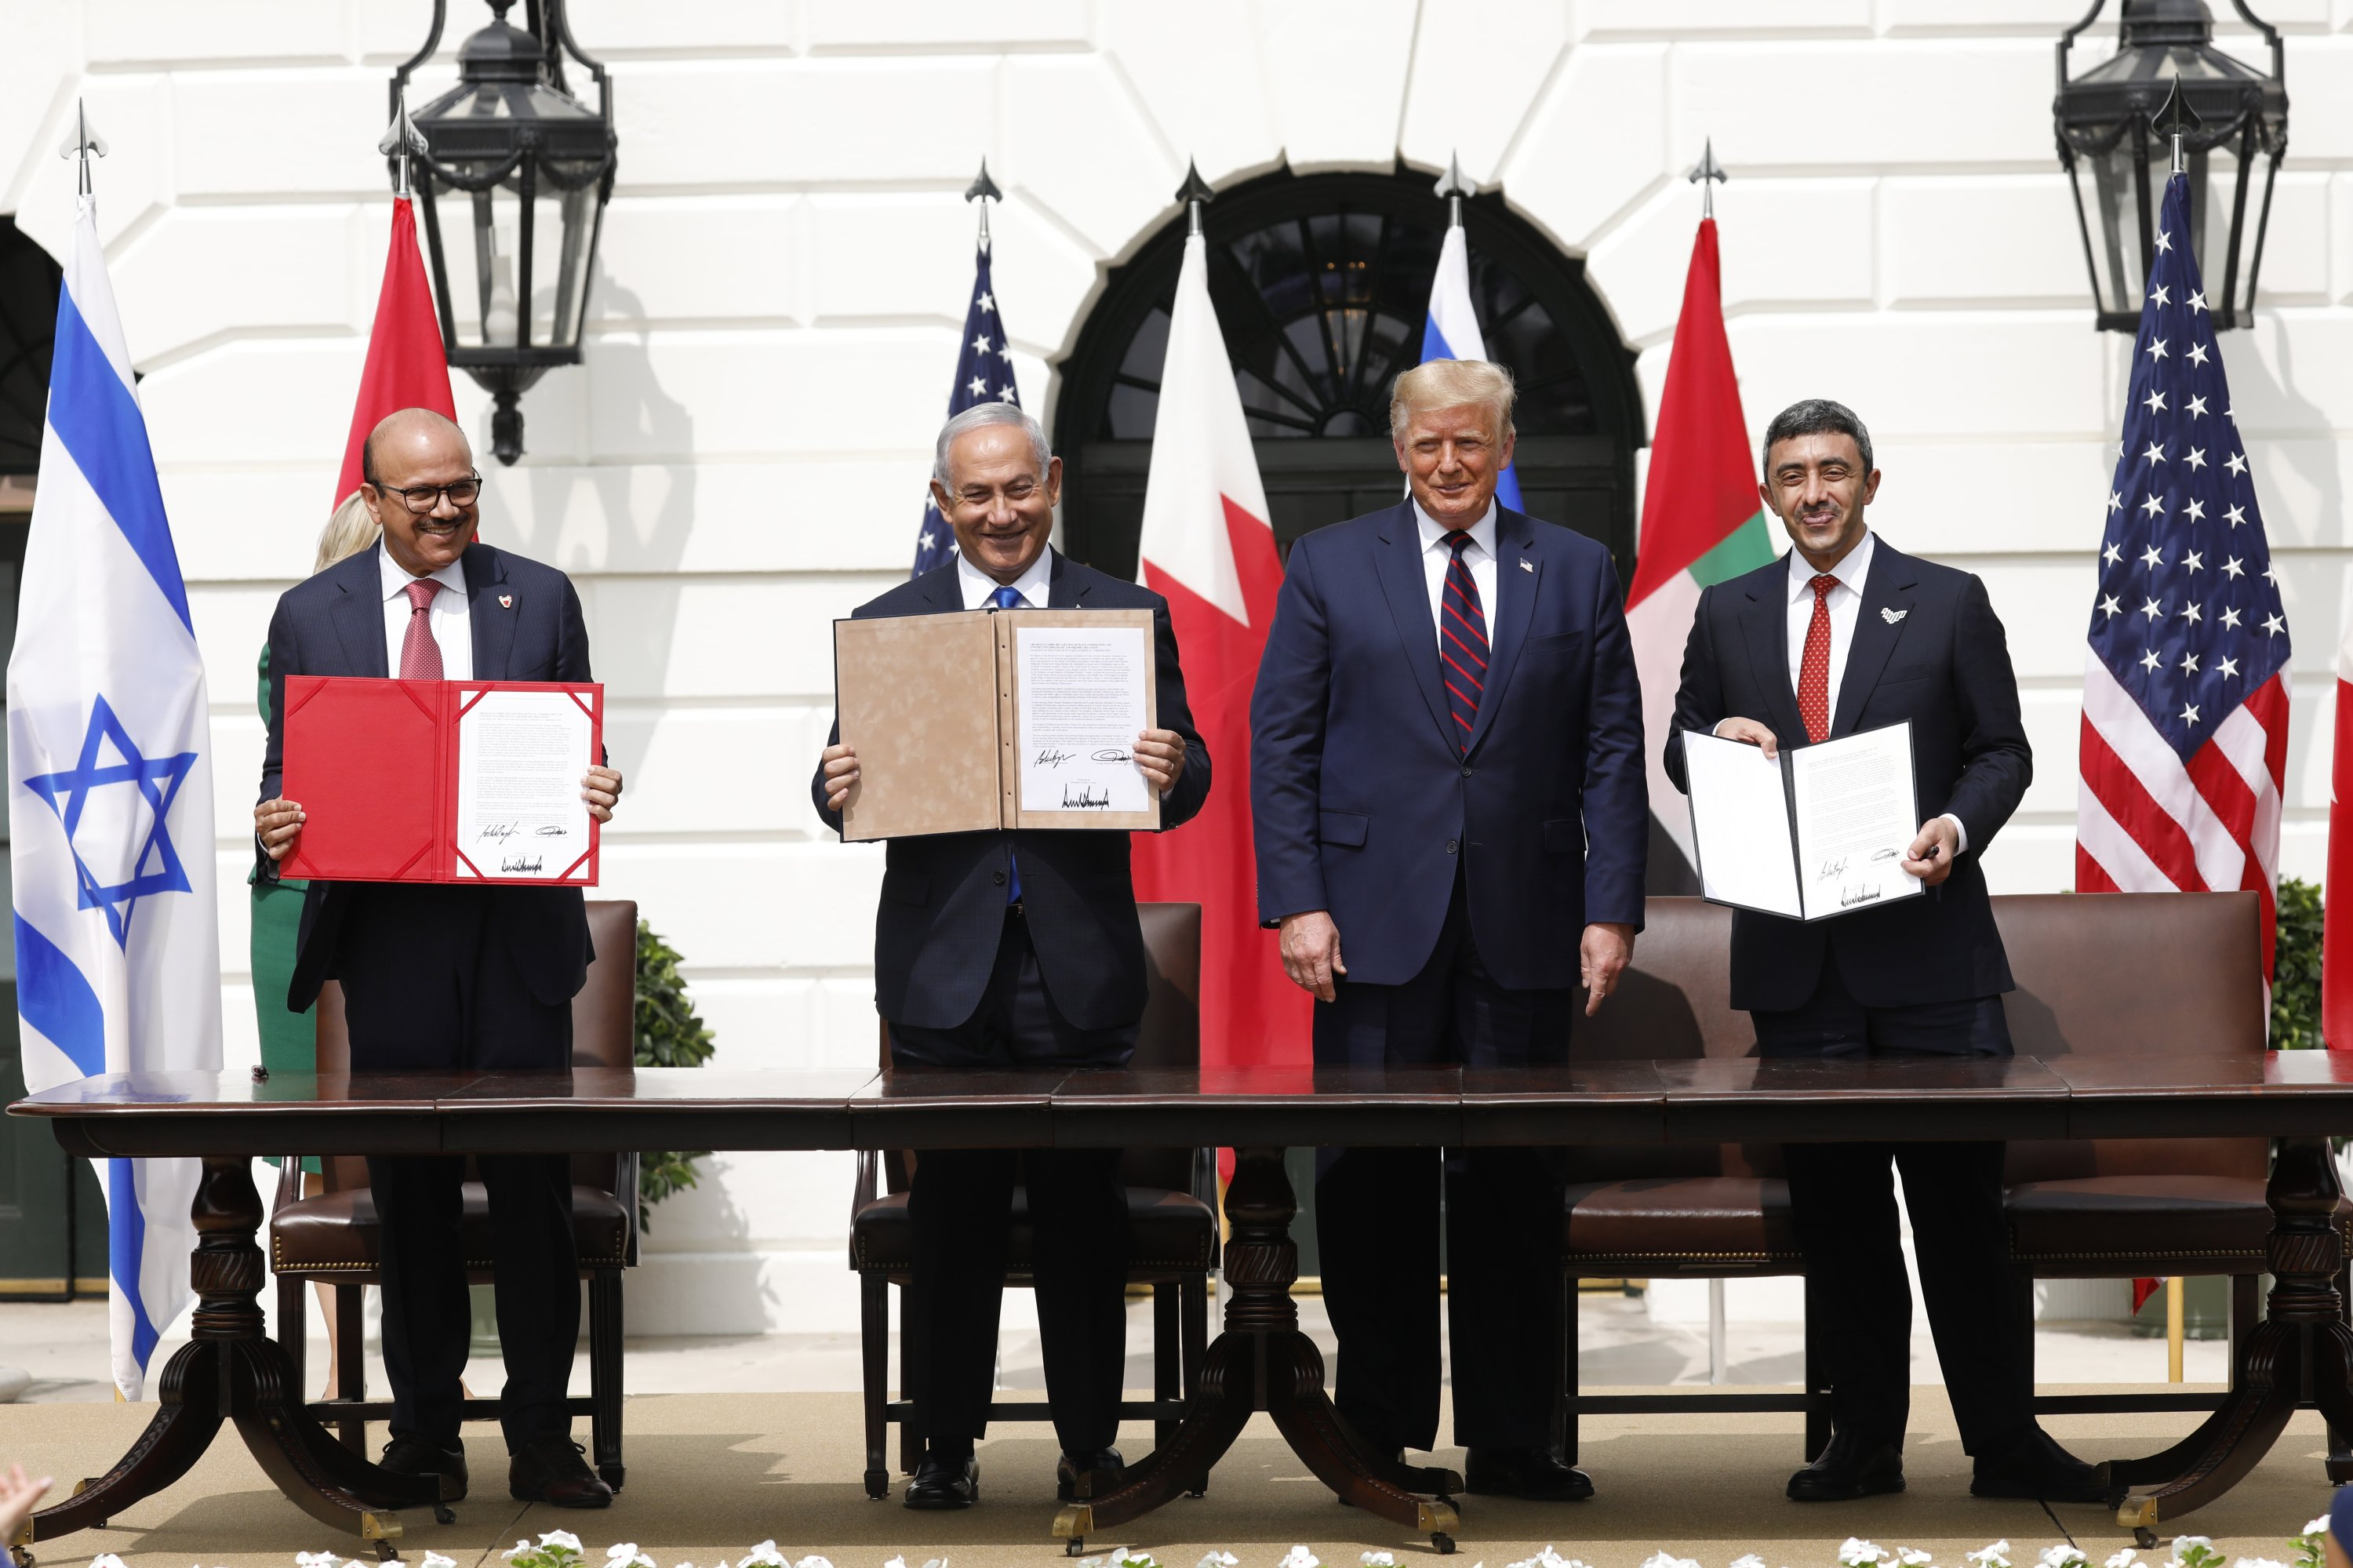 From left to right, Bahrain's Foreign Minister Abdullatif bin Rashid Al Zayani, Israel's Prime Minister Benjamin Netanyahu, then-U.S. President Donald Trump, UAE Foreign Minister Abdullah bin Zayed Al Nahyan hold signed documents during an Abraham Accords signing ceremony event on the South Lawn of the White House, Washington, D.C., U.S., Sept. 15, 2020. (Photo by Getty Images)